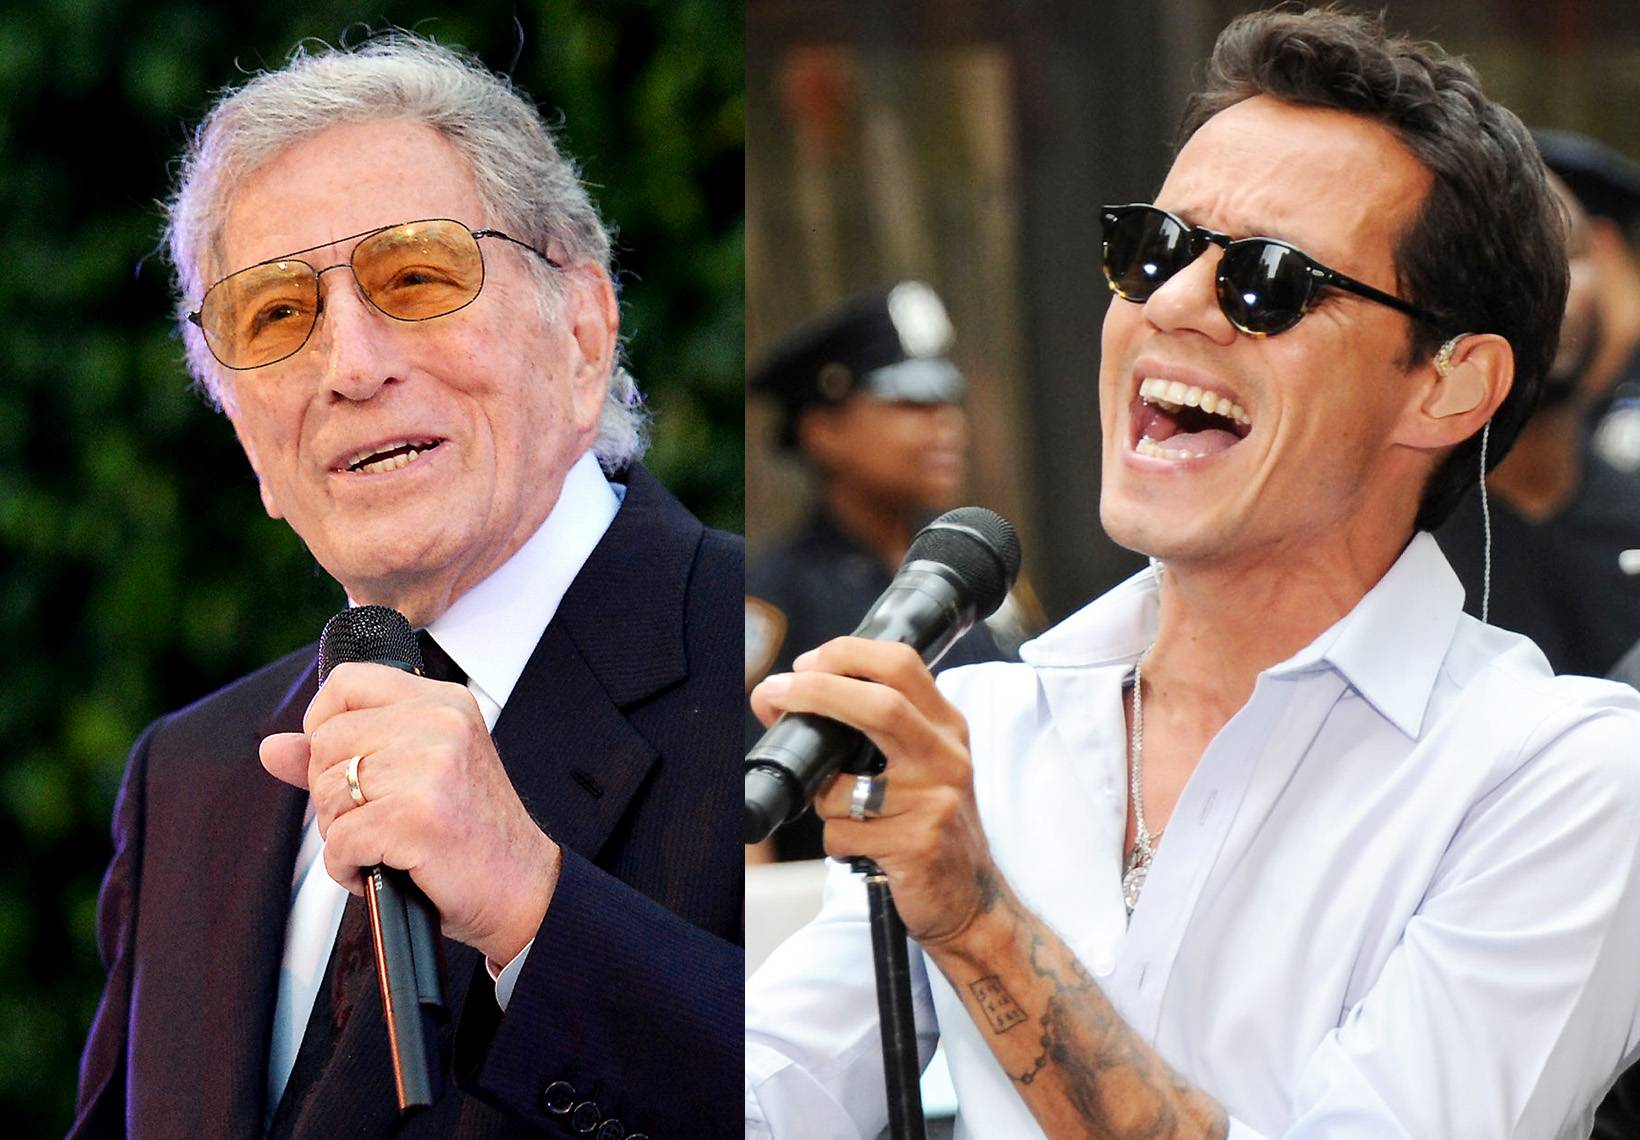 """Best Traditional Jazz Performance:Tony Bennett feat. Marc Anthony - """"For Once In My Life"""" - Past Soul Train Award winner and legendary crooner, Tony Bennett teamed up with the latin pop star for this single off his Spanish-language album, Viva Duets. (Photos from left: Michael Kovac/Getty Images, Ben Gabbe/Getty Images)"""